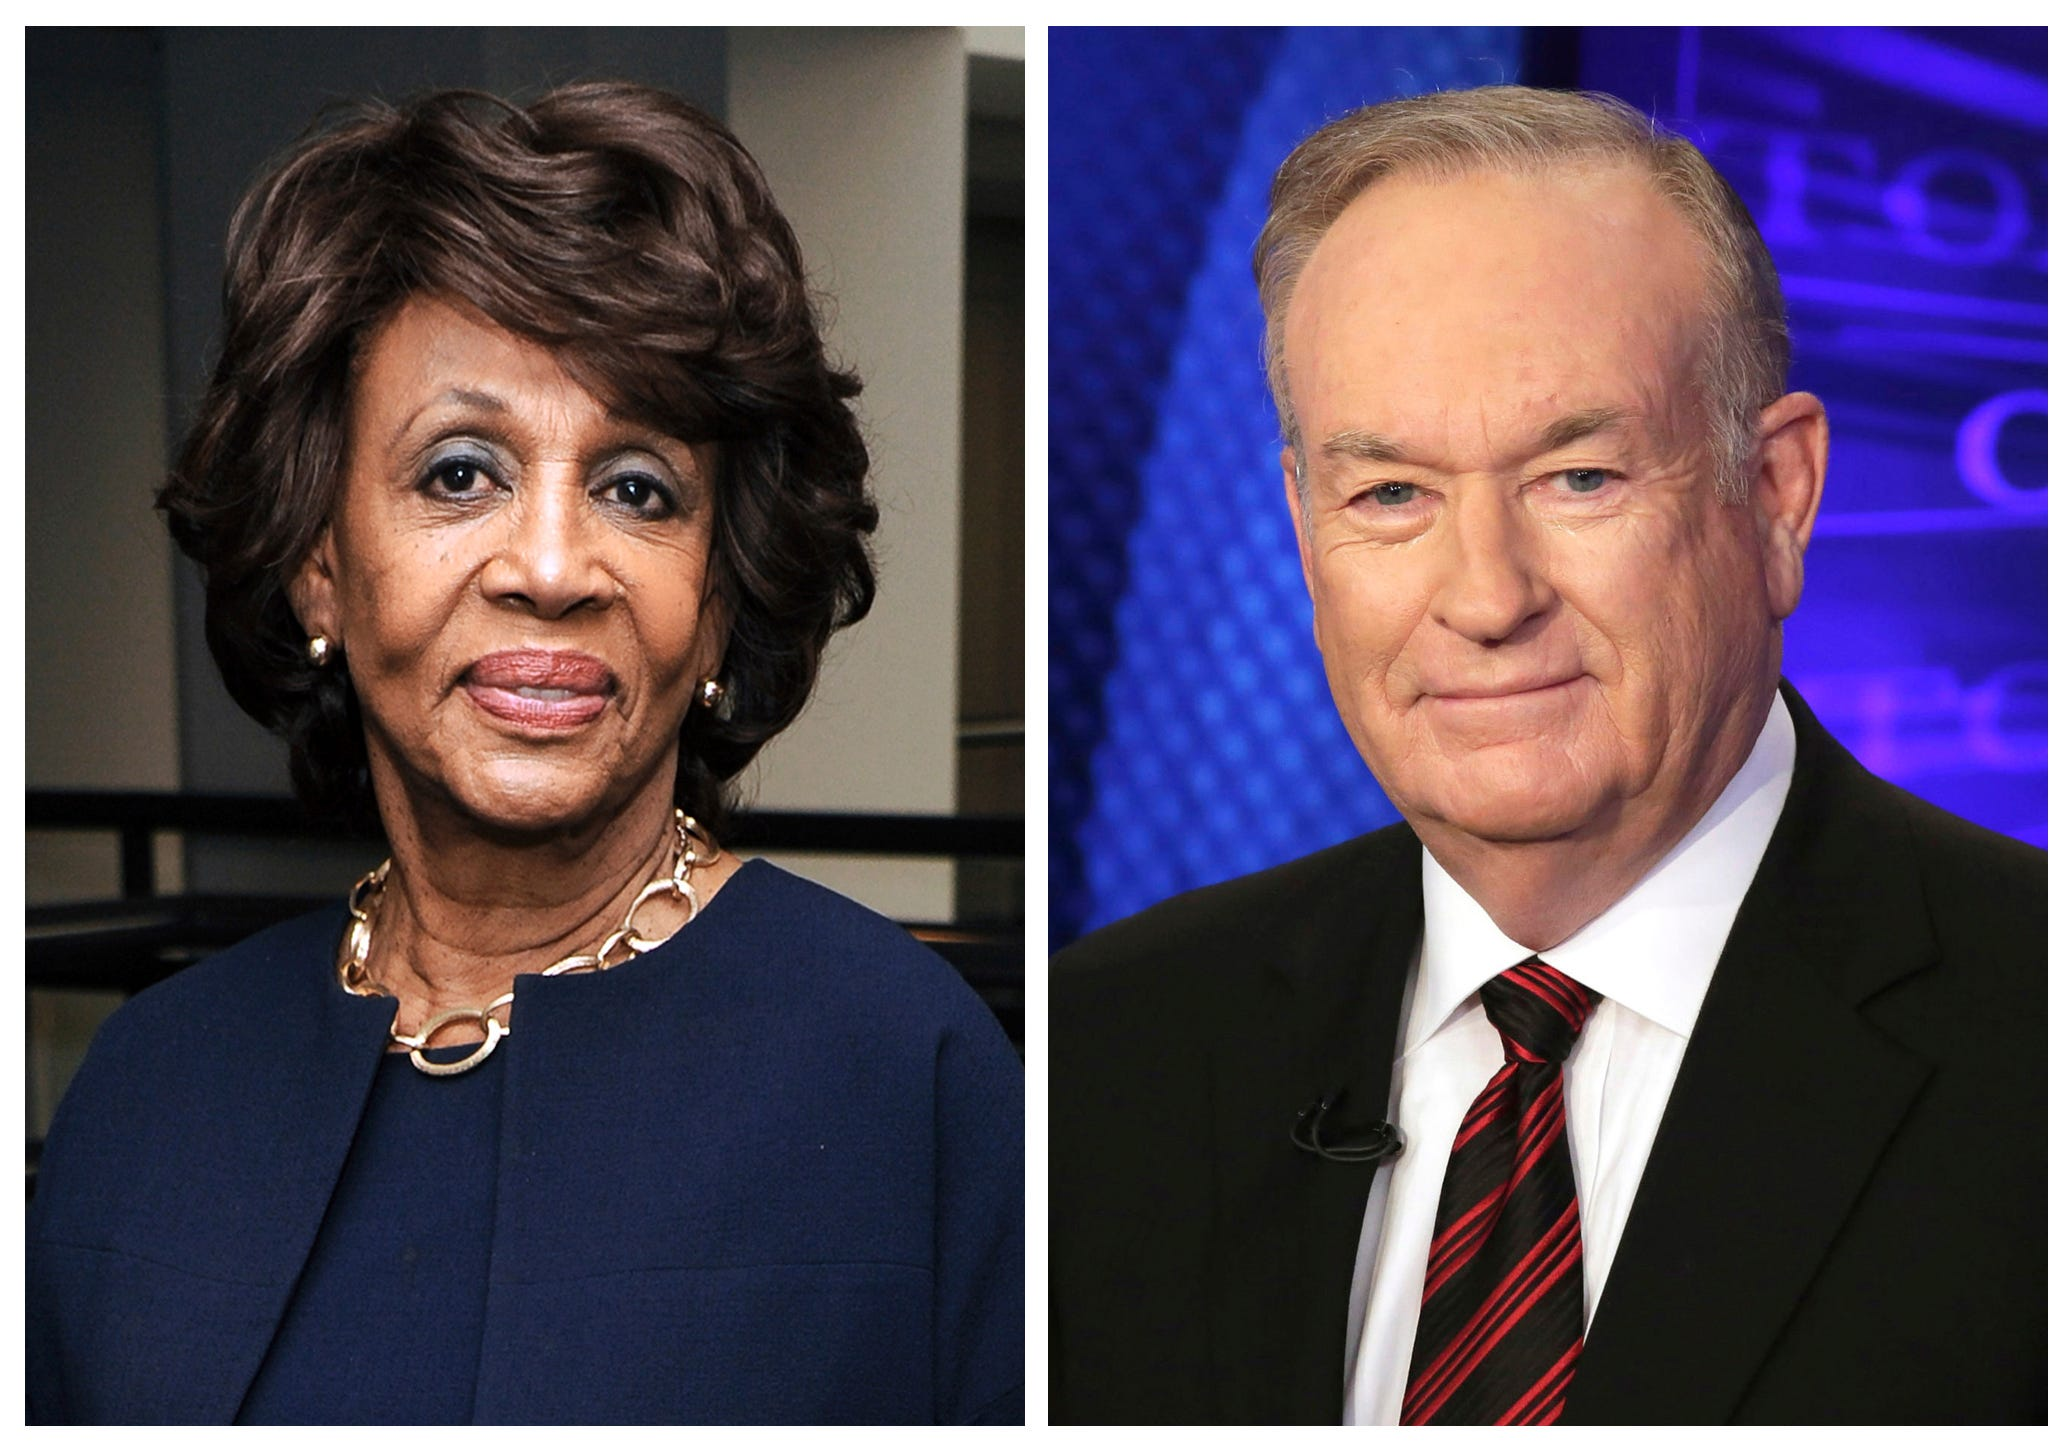 How media outlets covered Bill O'Reilly's comments about Maxine Waters